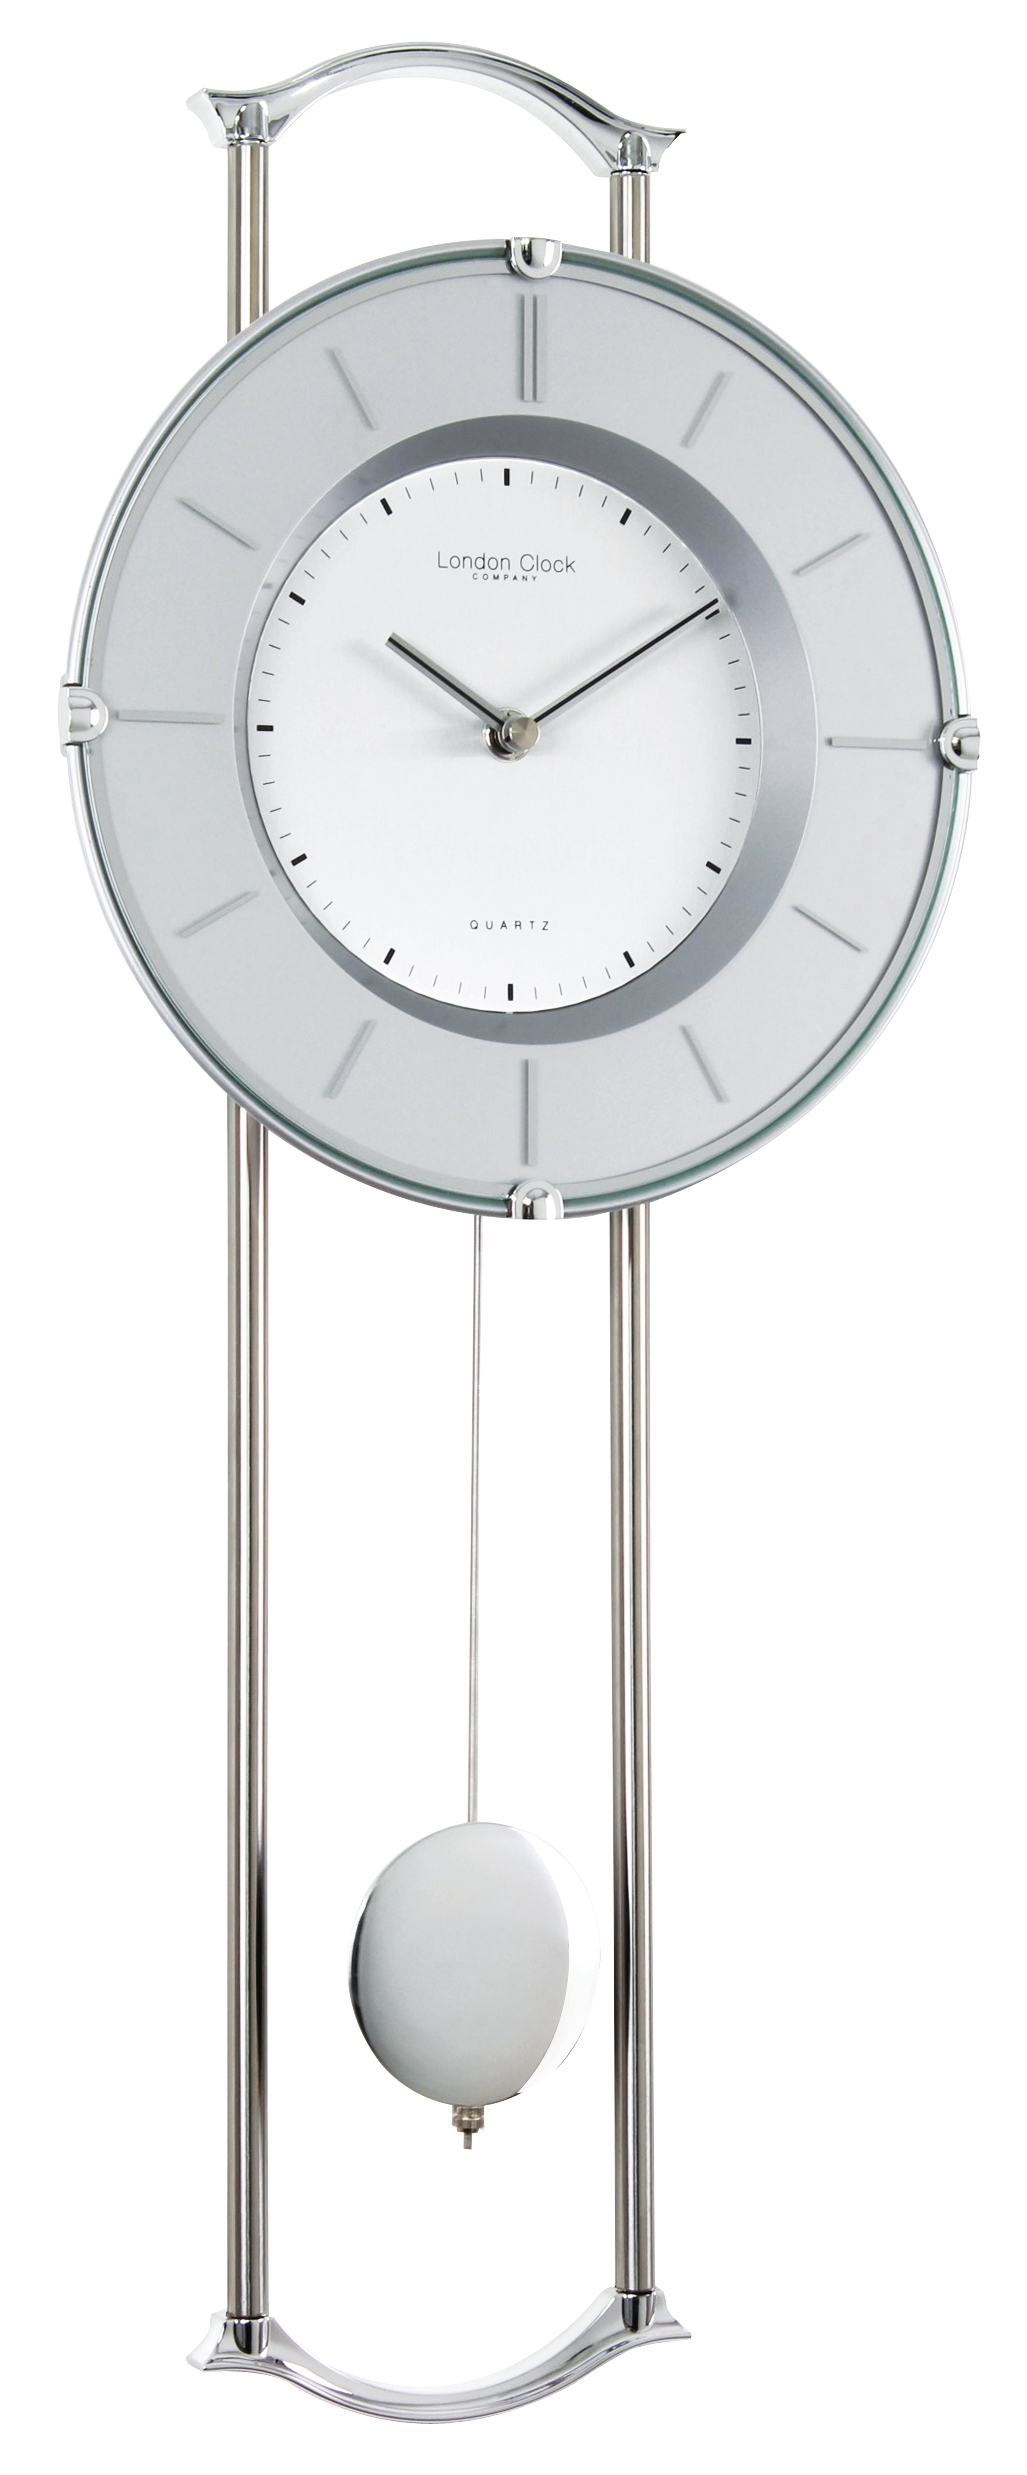 Silver pendulum wall clock images home wall decoration ideas contemporary pendulum wall clock image collections home wall silver finish pendulum clock adelbrook discount store silver amipublicfo Images